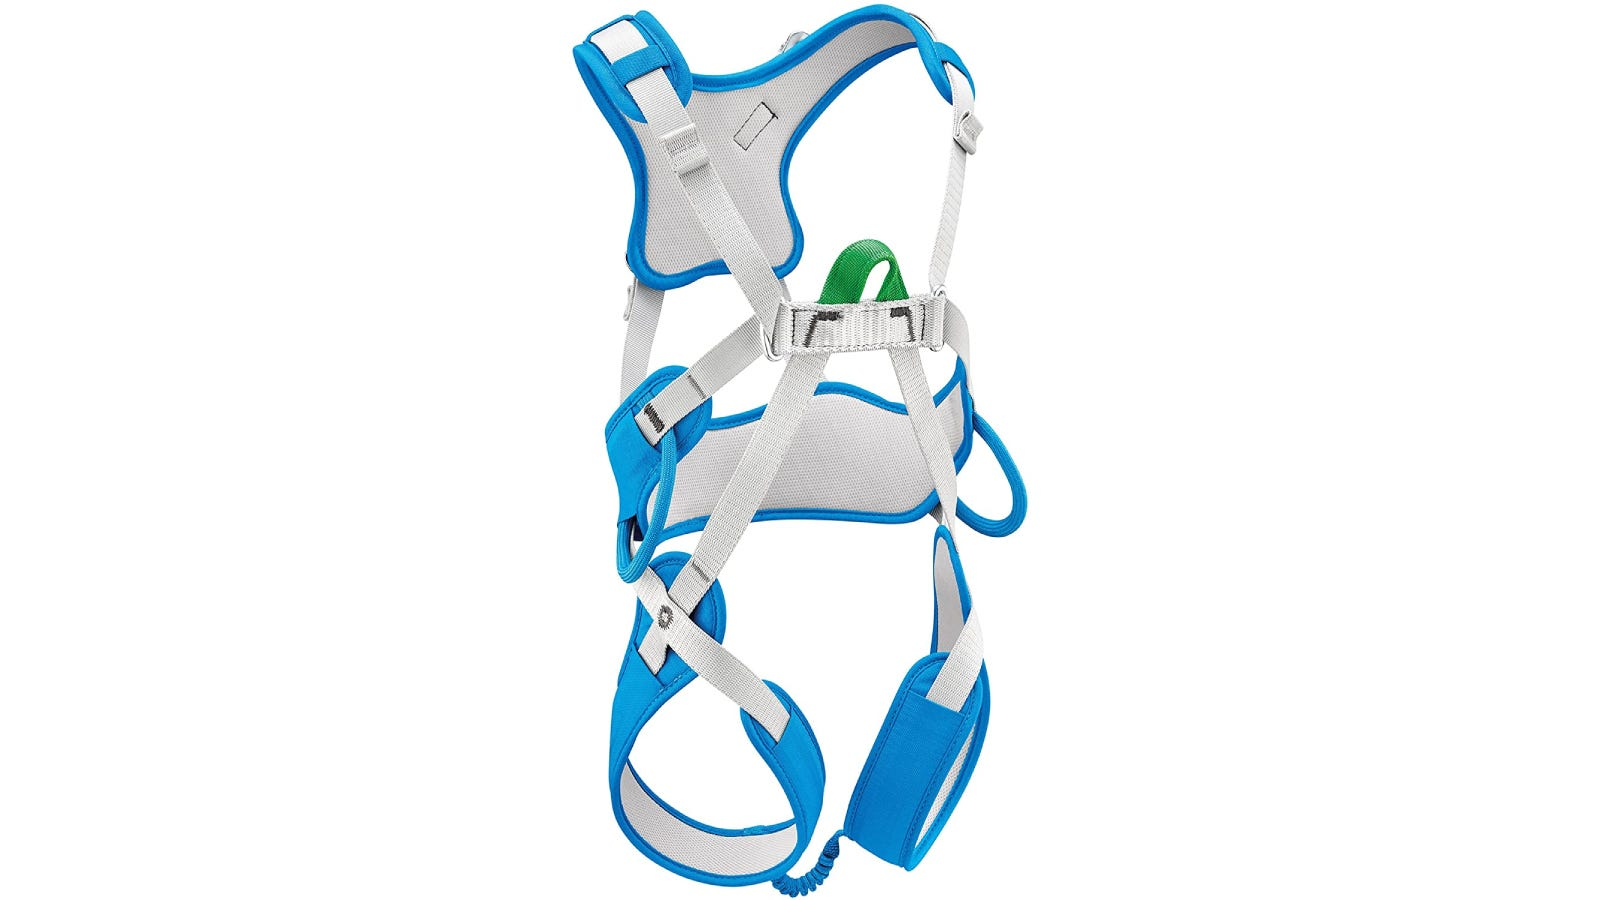 A blue and white full-body climbing harness for kids.